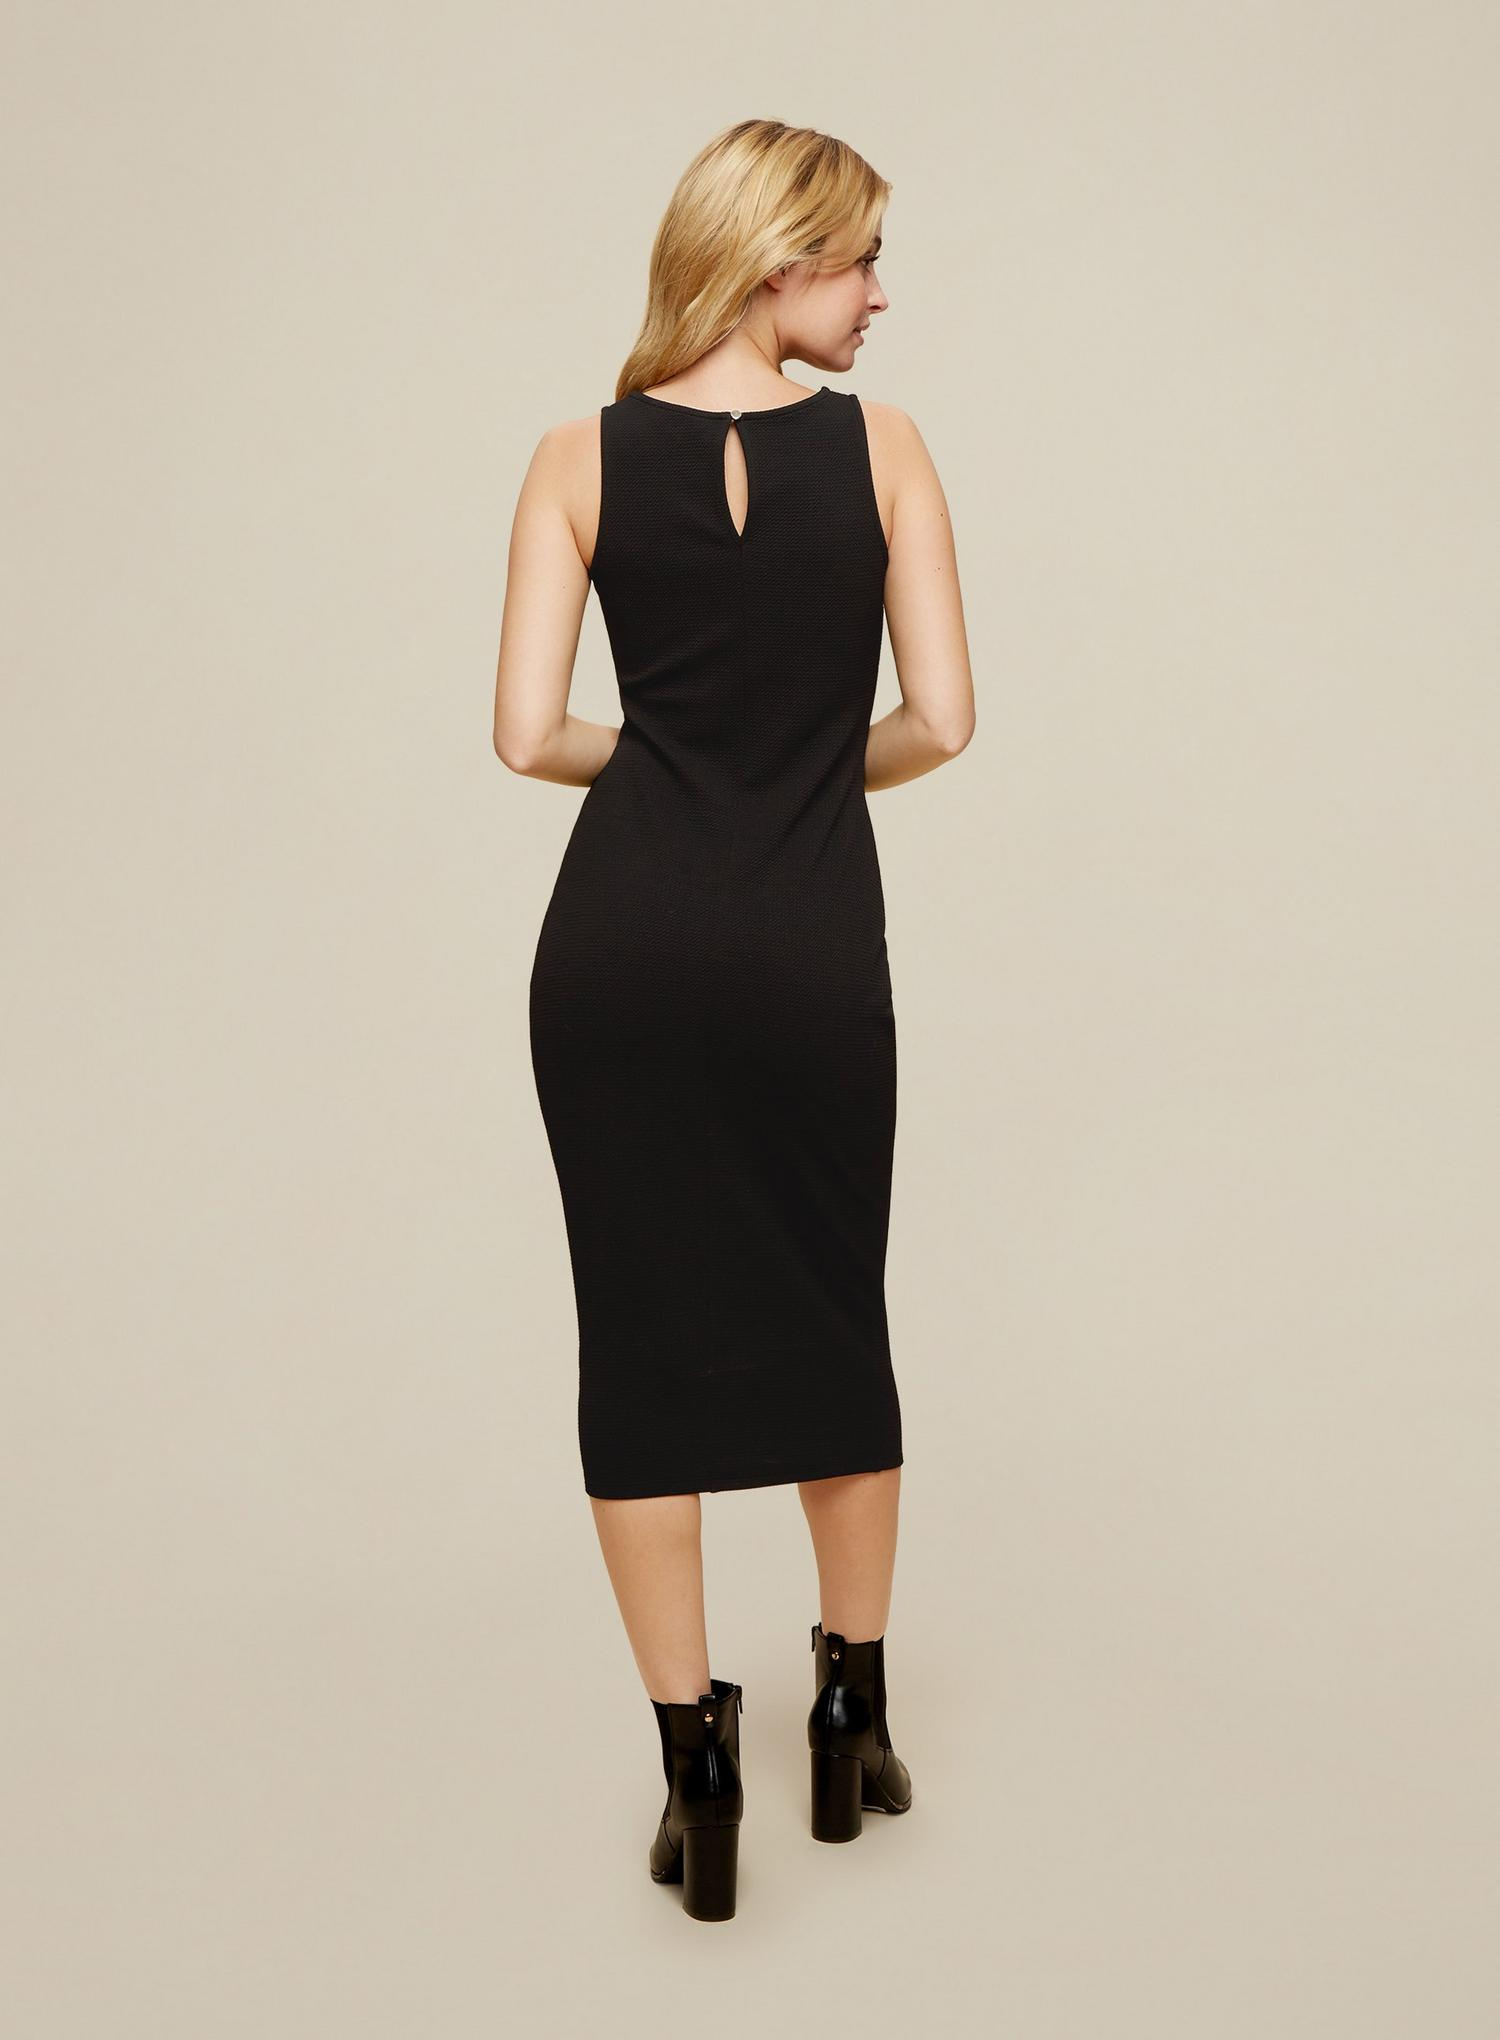 105 Petites Black Bodycon Midi Dress image number 3